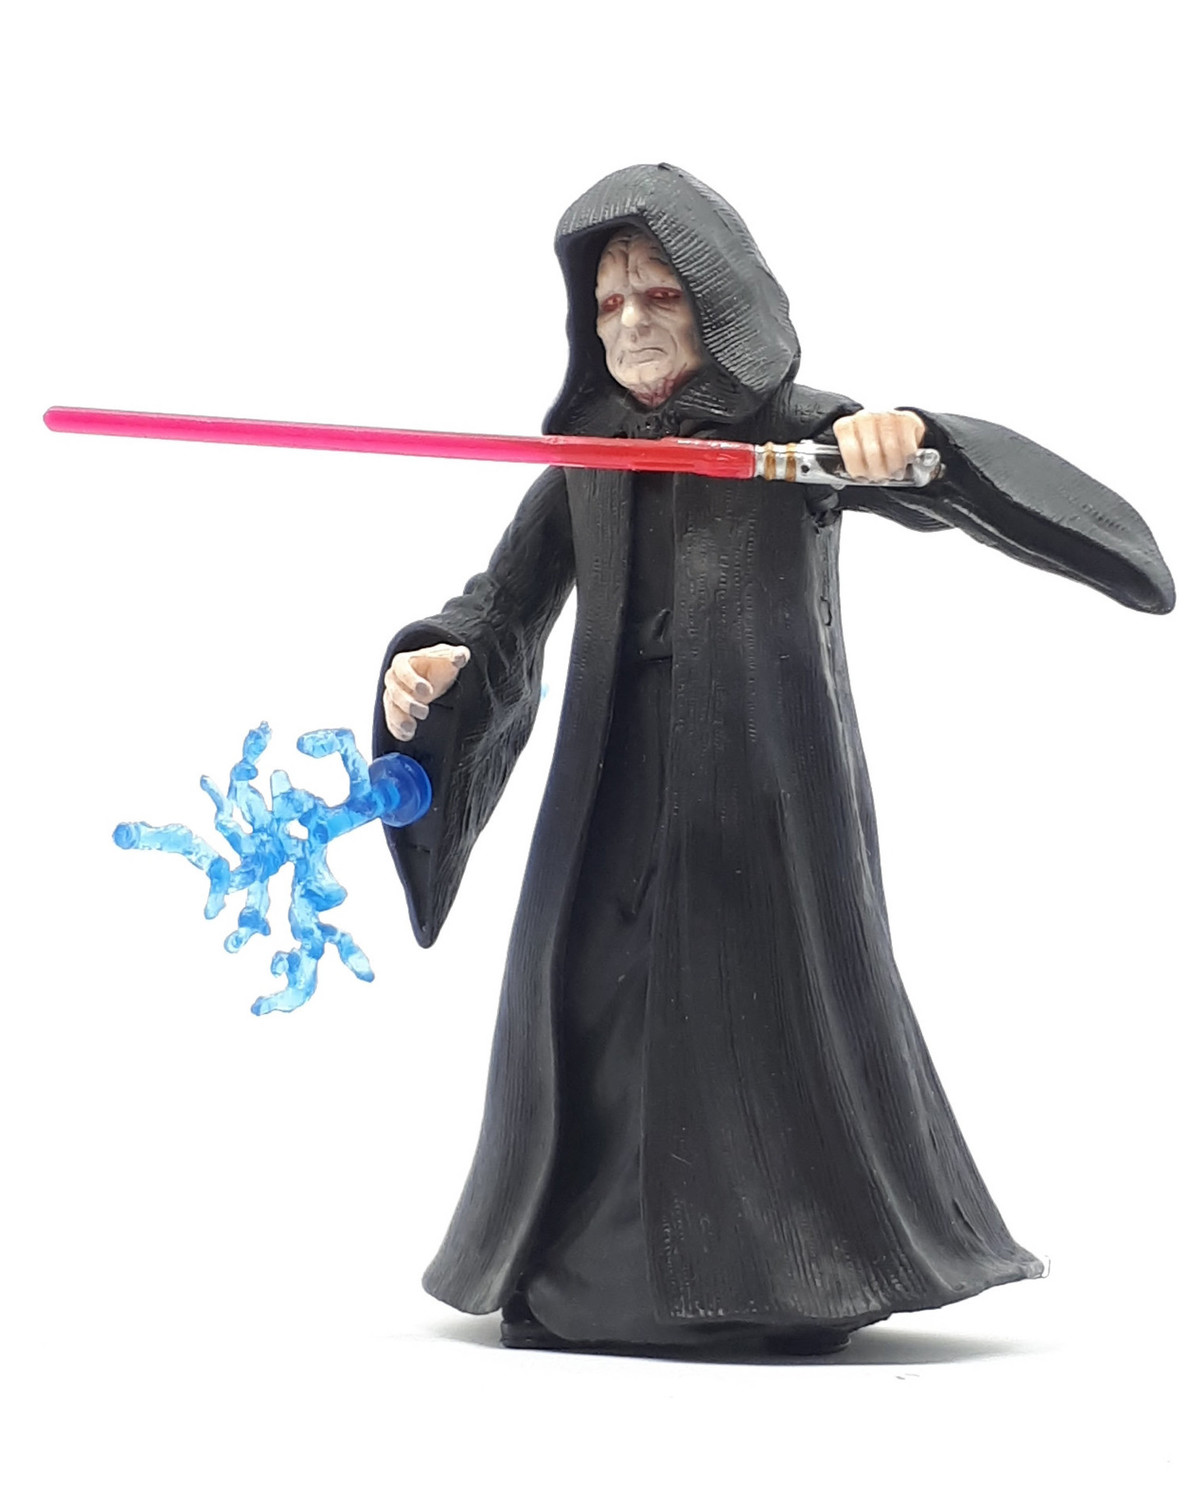 Emperor Palpatine Firing Force Lightning Revenge Of The Sith Action Figure Iii 12